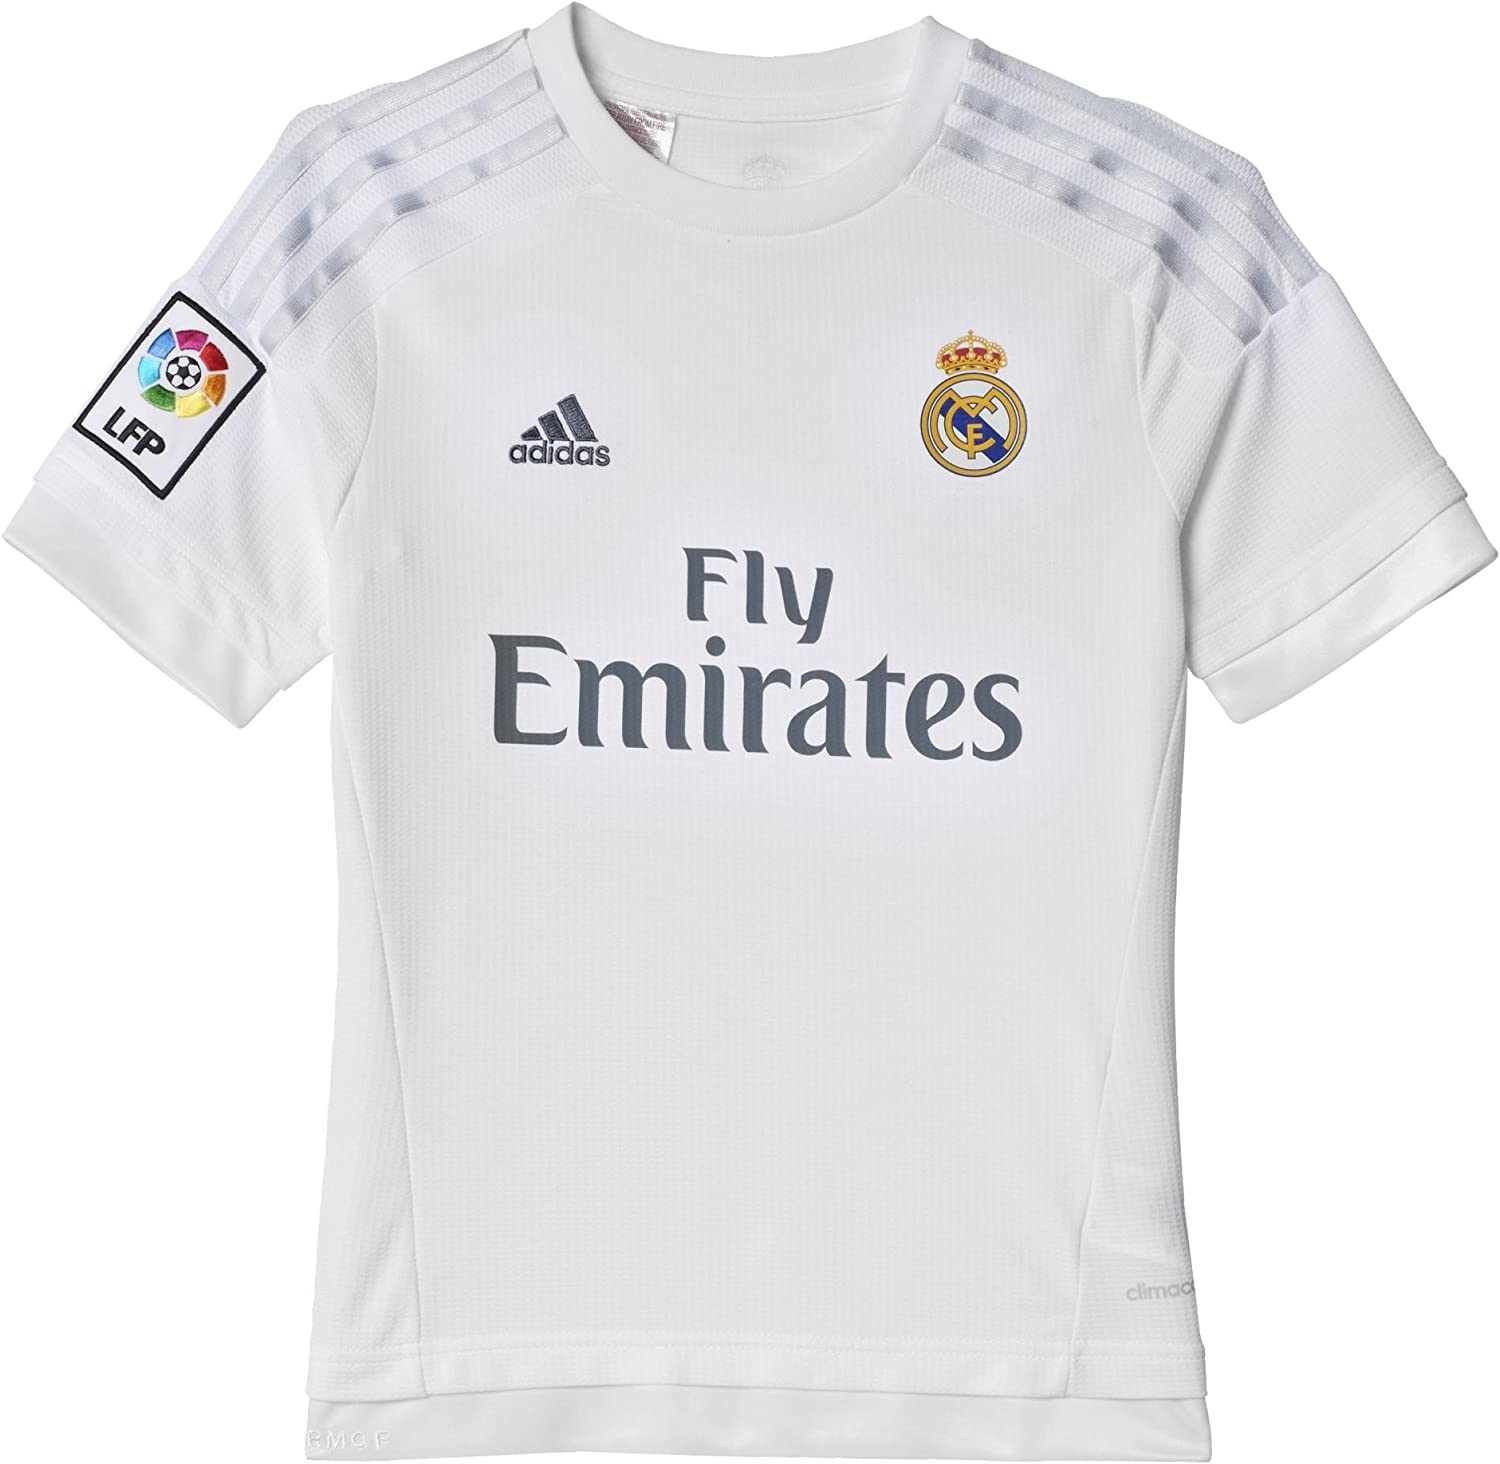 adidas Real Madrid Kids (Boys Youth) Home Jersey 2015-2016-13-14 Years